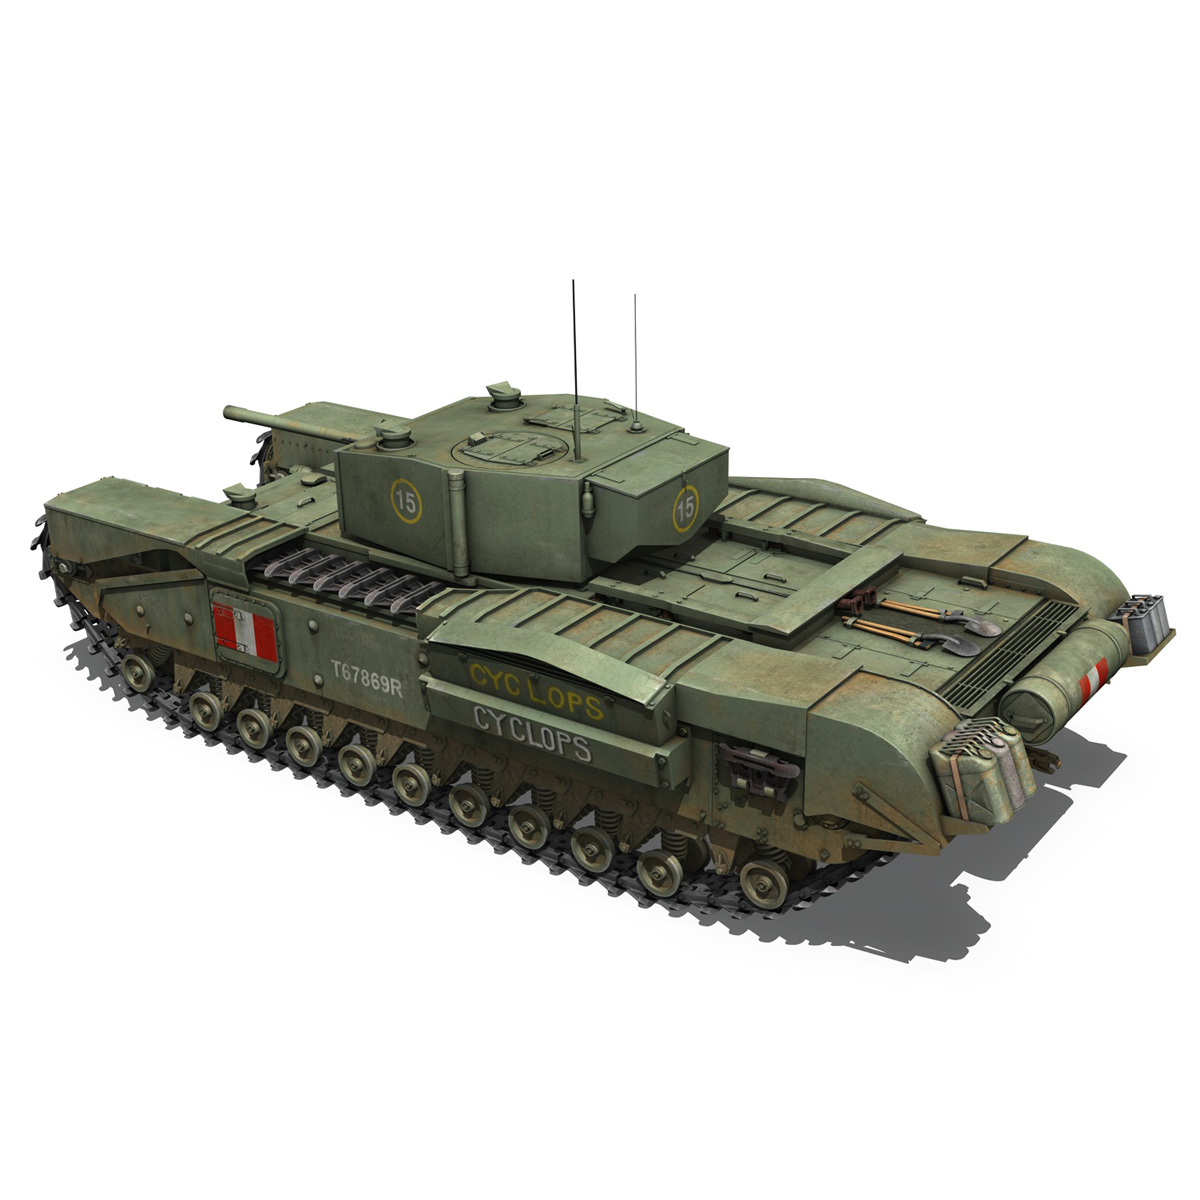 churchill mk.iii - cyclops 3d model 3ds fbx c4d lwo obj 270900